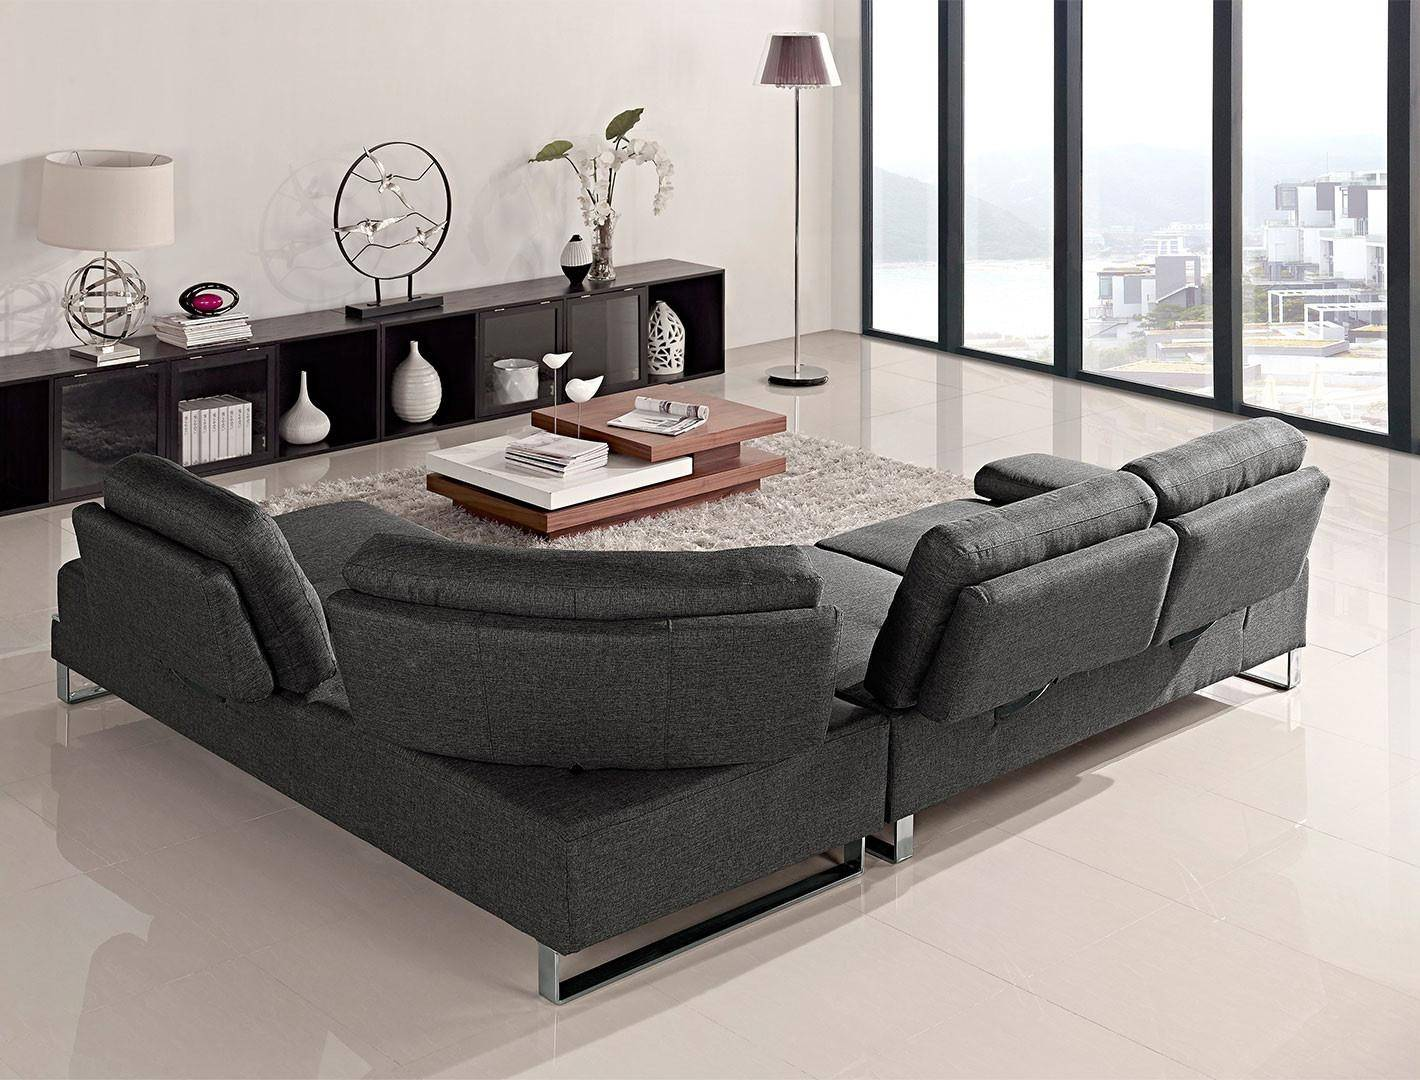 Grey Fabric Ultra Modern Sectional Sofa